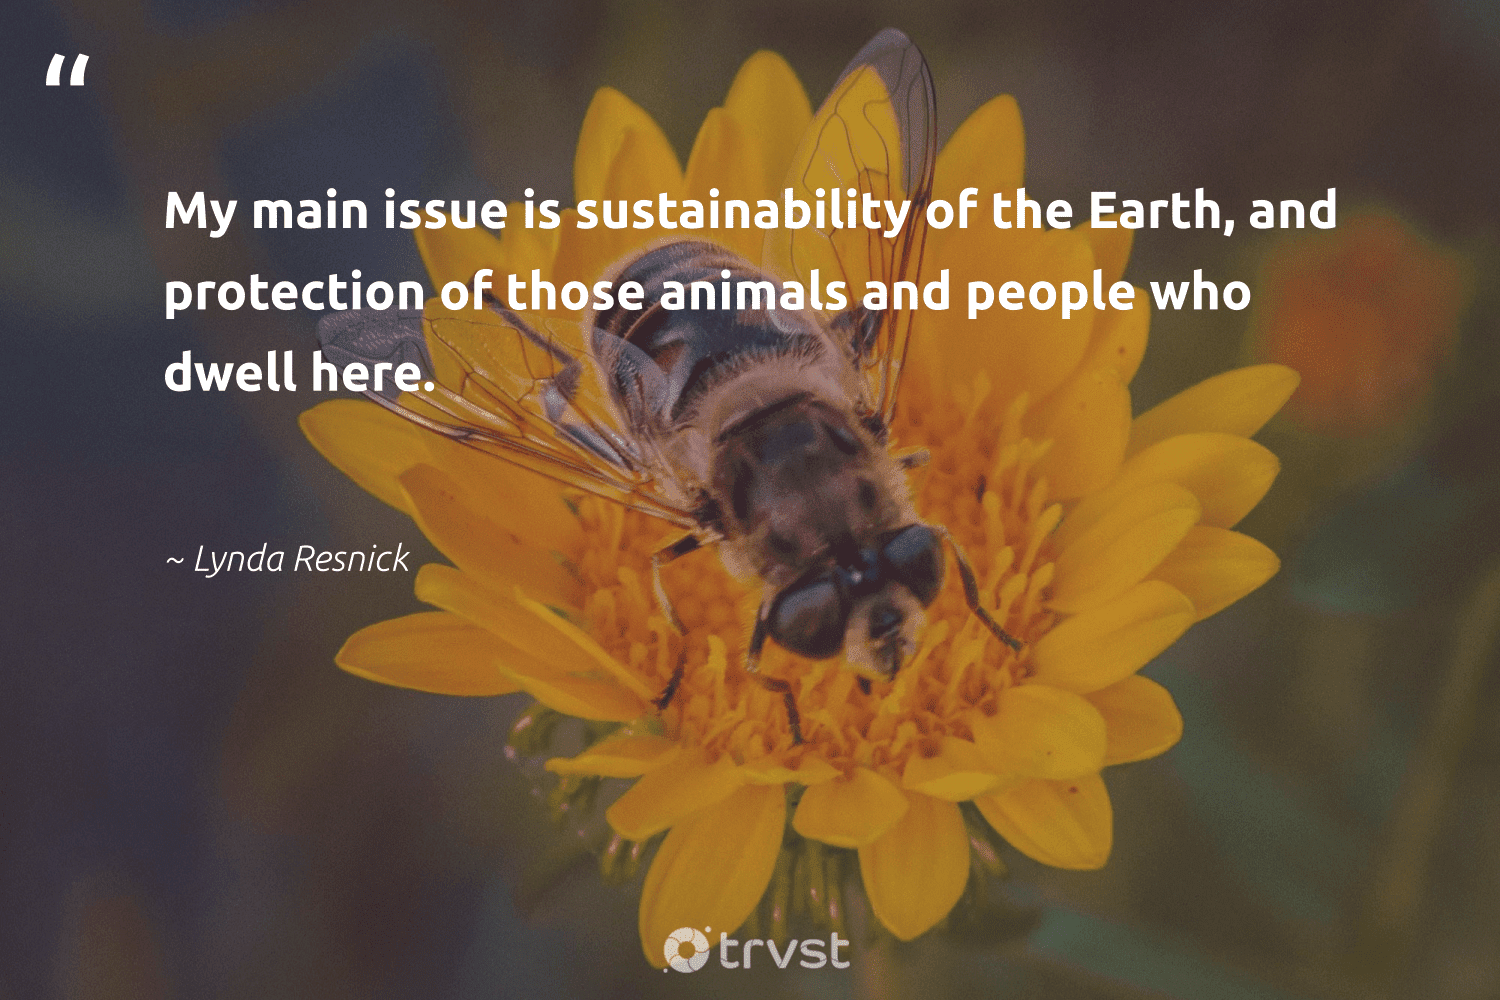 """""""My main issue is sustainability of the Earth, and protection of those animals and people who dwell here.""""  - Lynda Resnick #trvst #quotes #sustainability #earth #animals #planet #parrot #sustainable #dosomething #nature #cheetah #gogreen"""